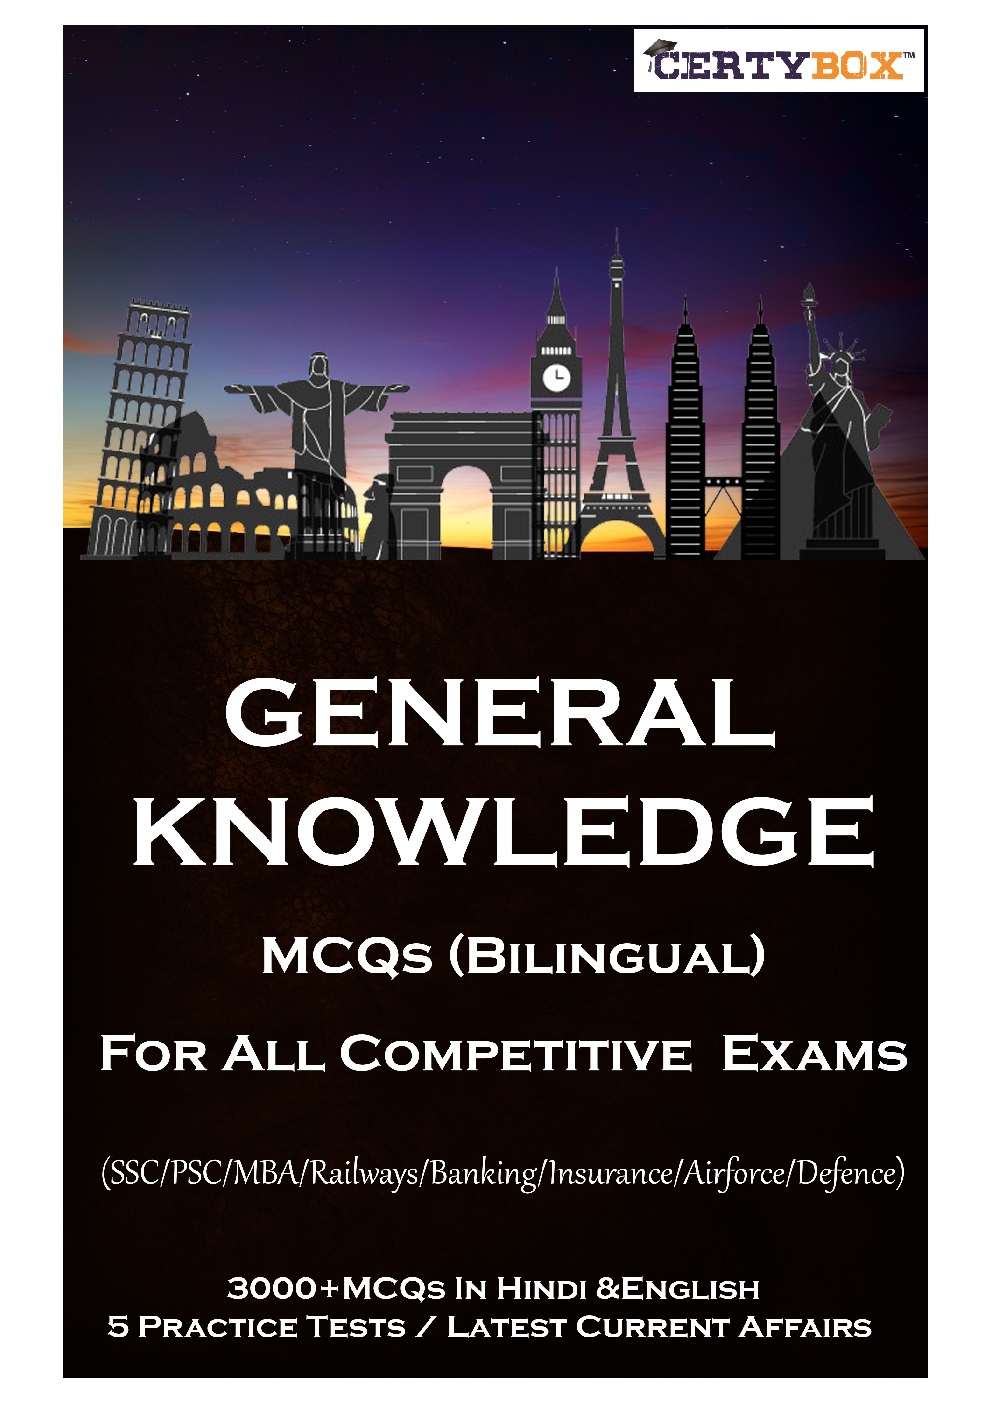 General Knowledge MCQs (Bilingual) For All Competitive Exams - Page 1